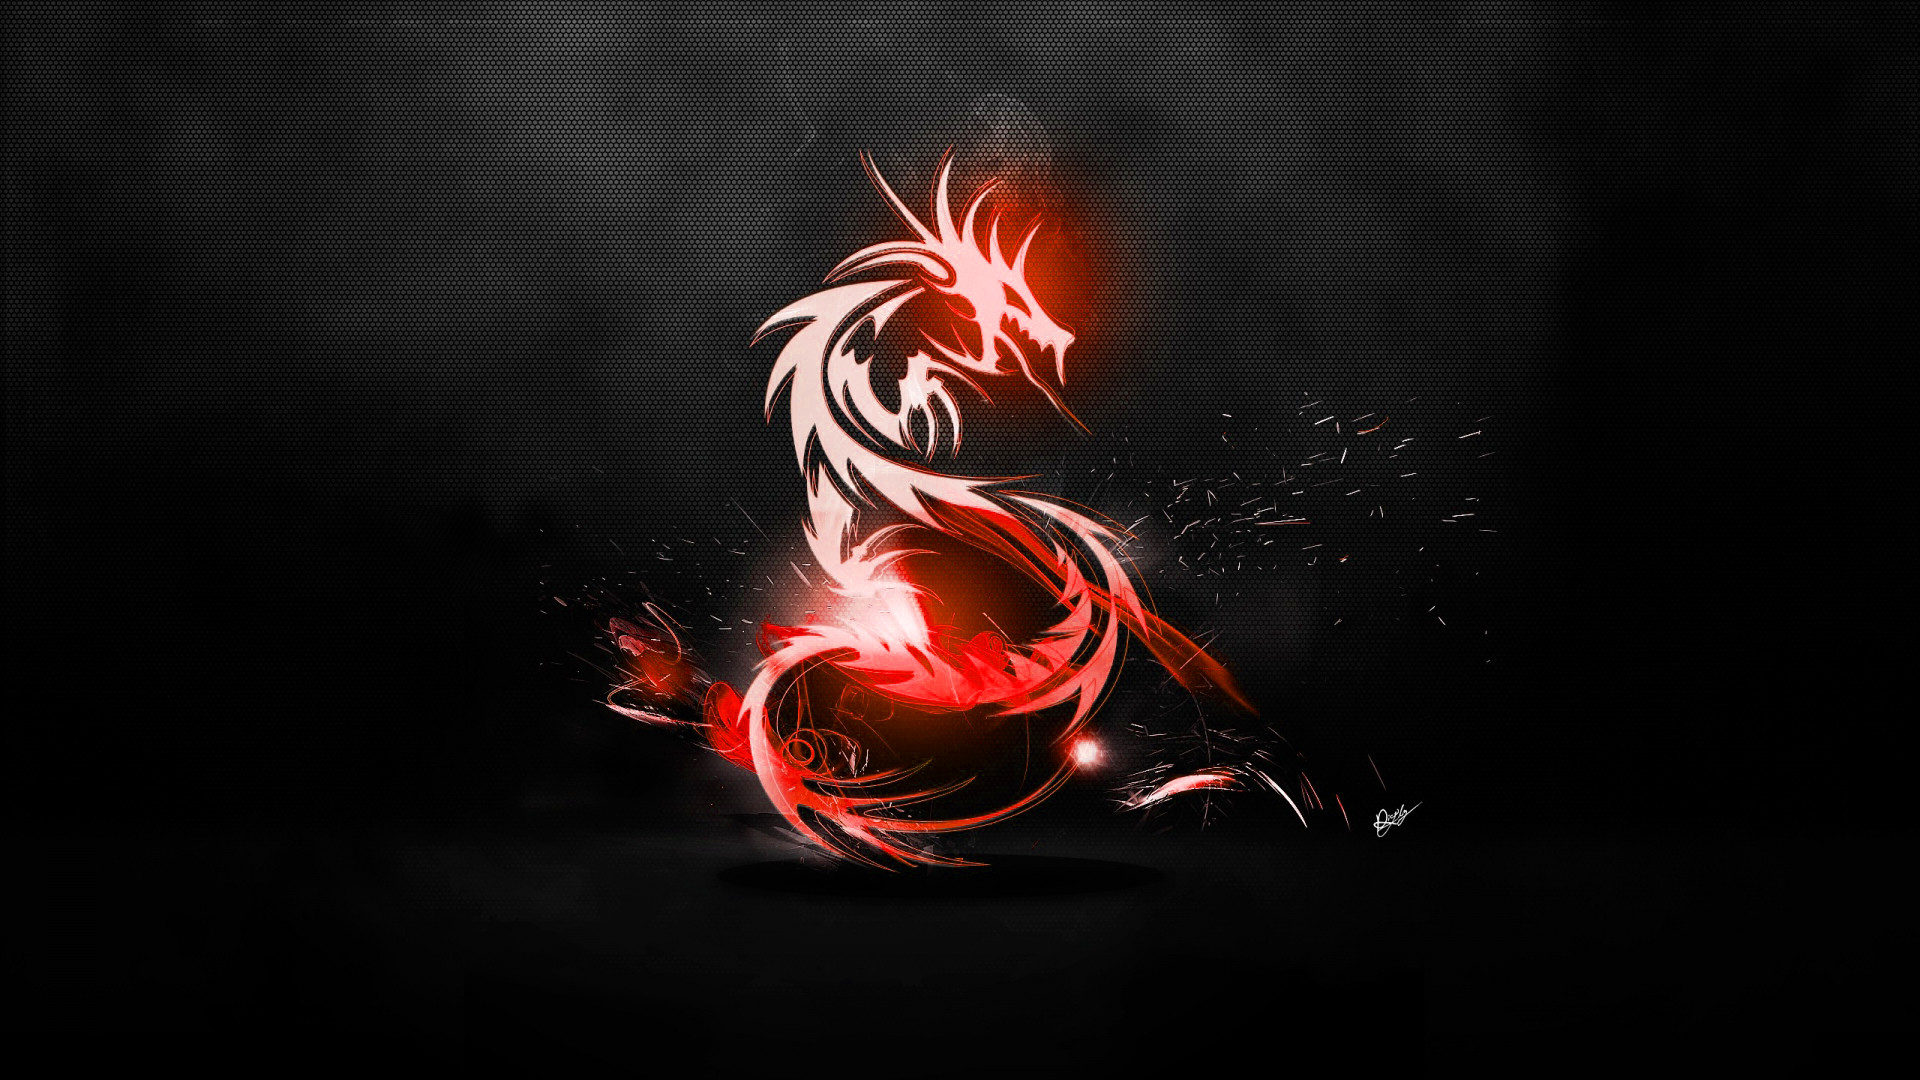 HD Black And Red Wallpapers (79 Wallpapers)